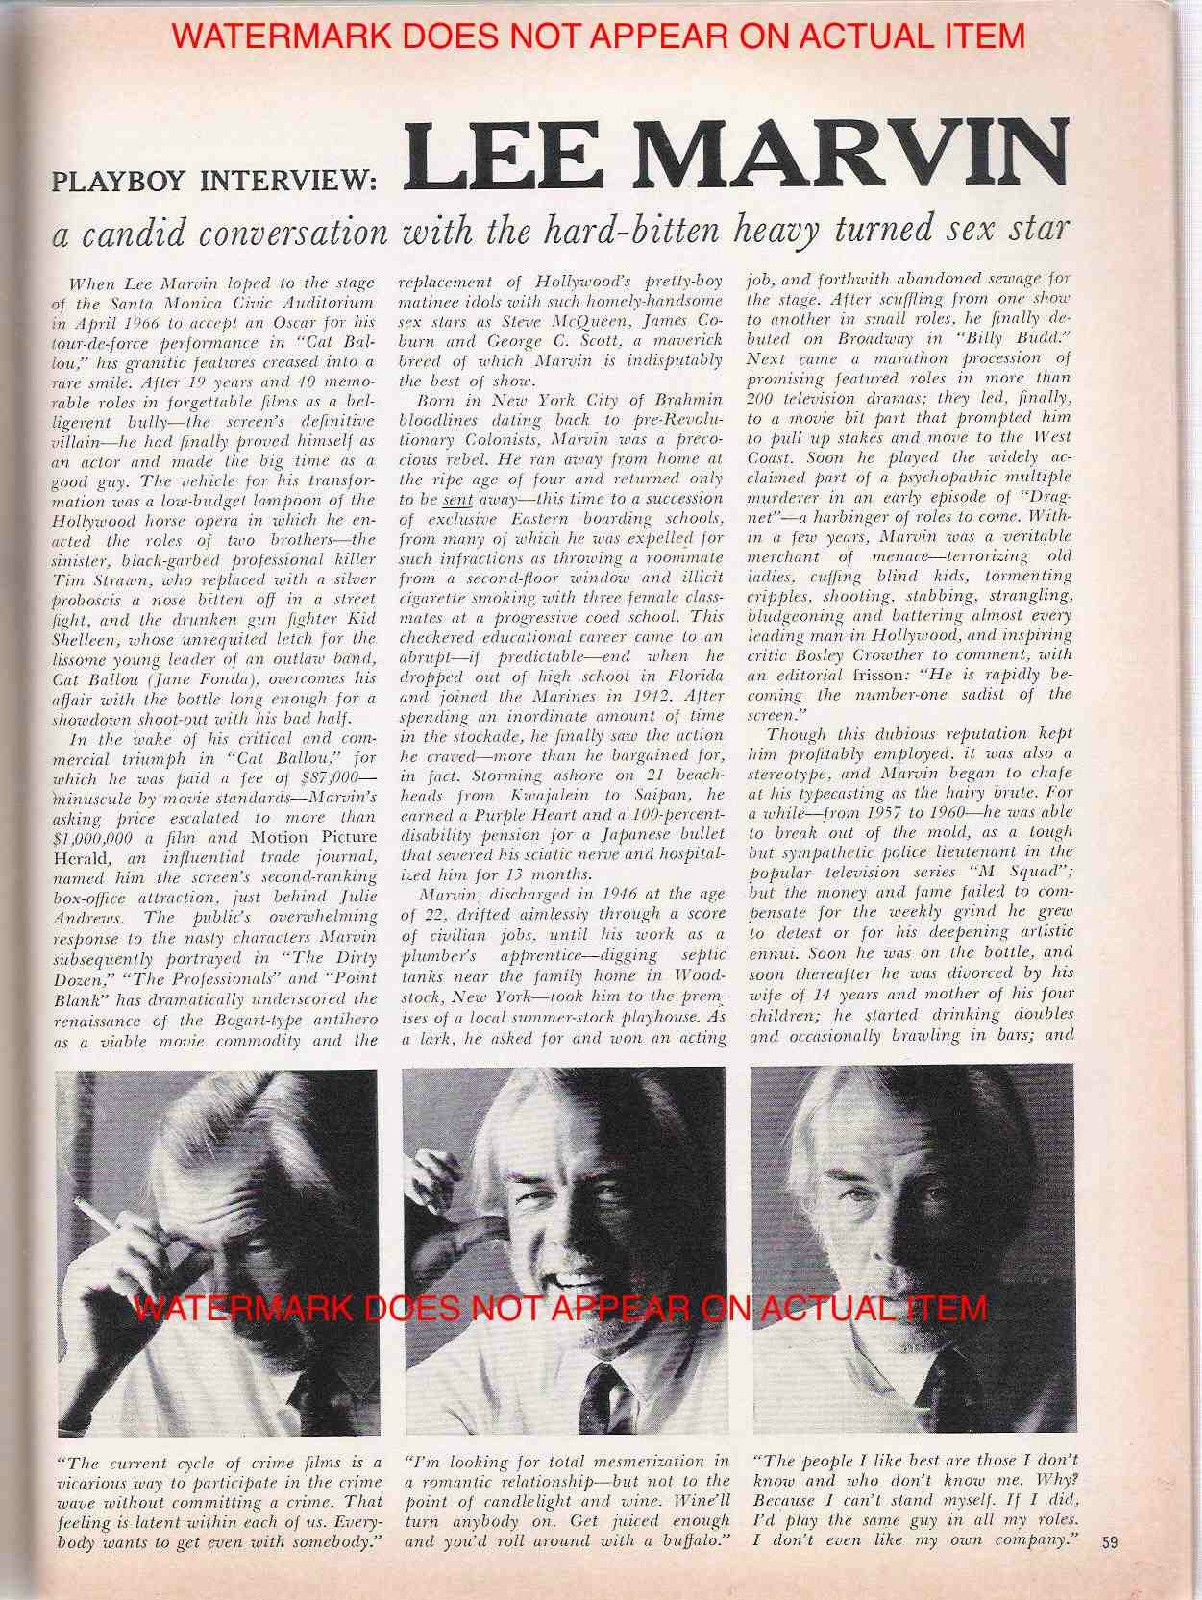 First page of the lengthy and incisive PLAYBOY interview Lee Marvin did for Playboy's 15th Anniversary issue in 1969.